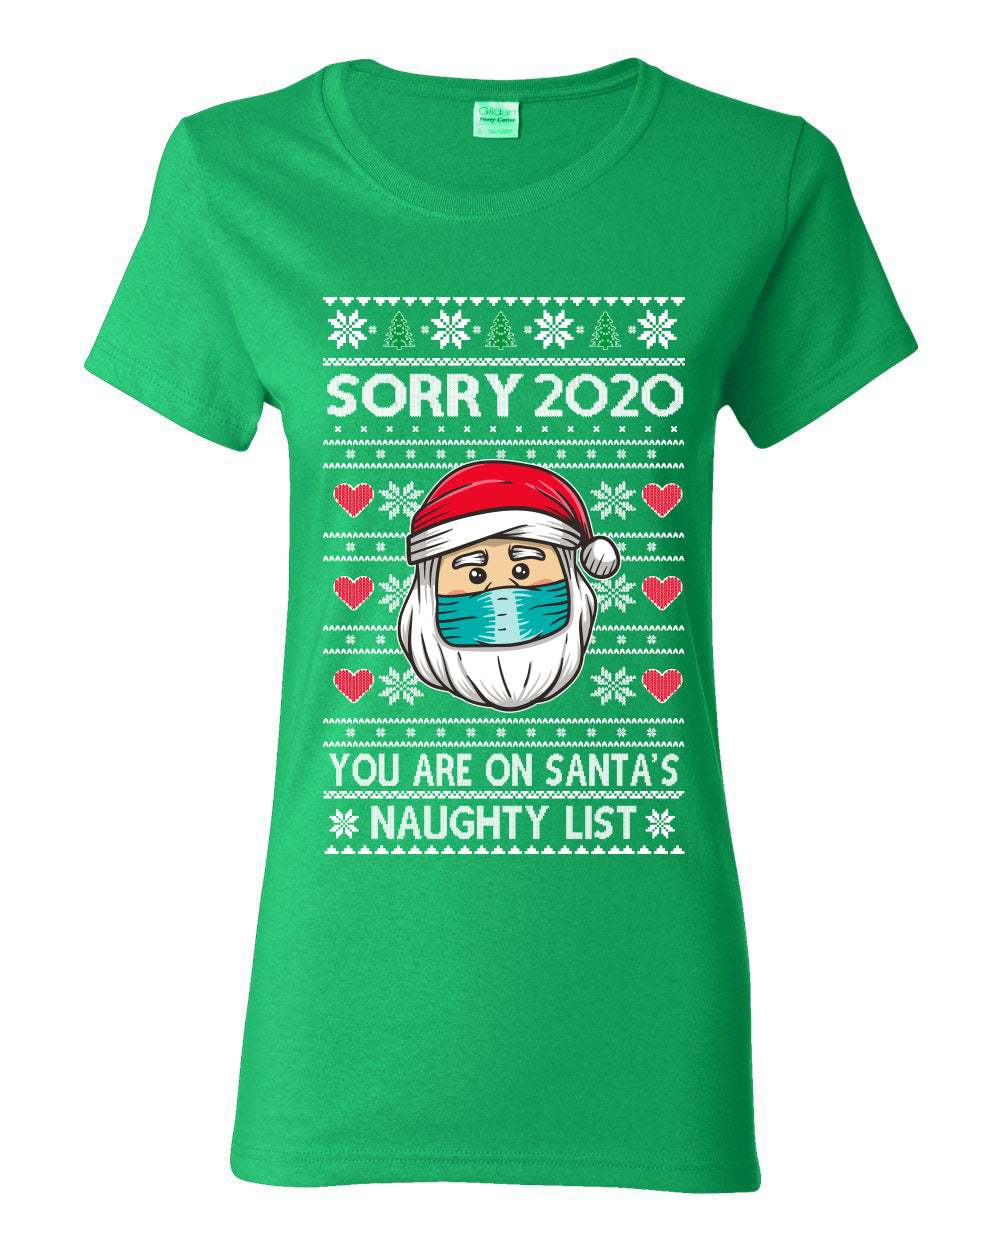 Sorry 2020 You are on Santa's Naughty List Ugly Christmas Sweater Womens Graphic T-Shirt